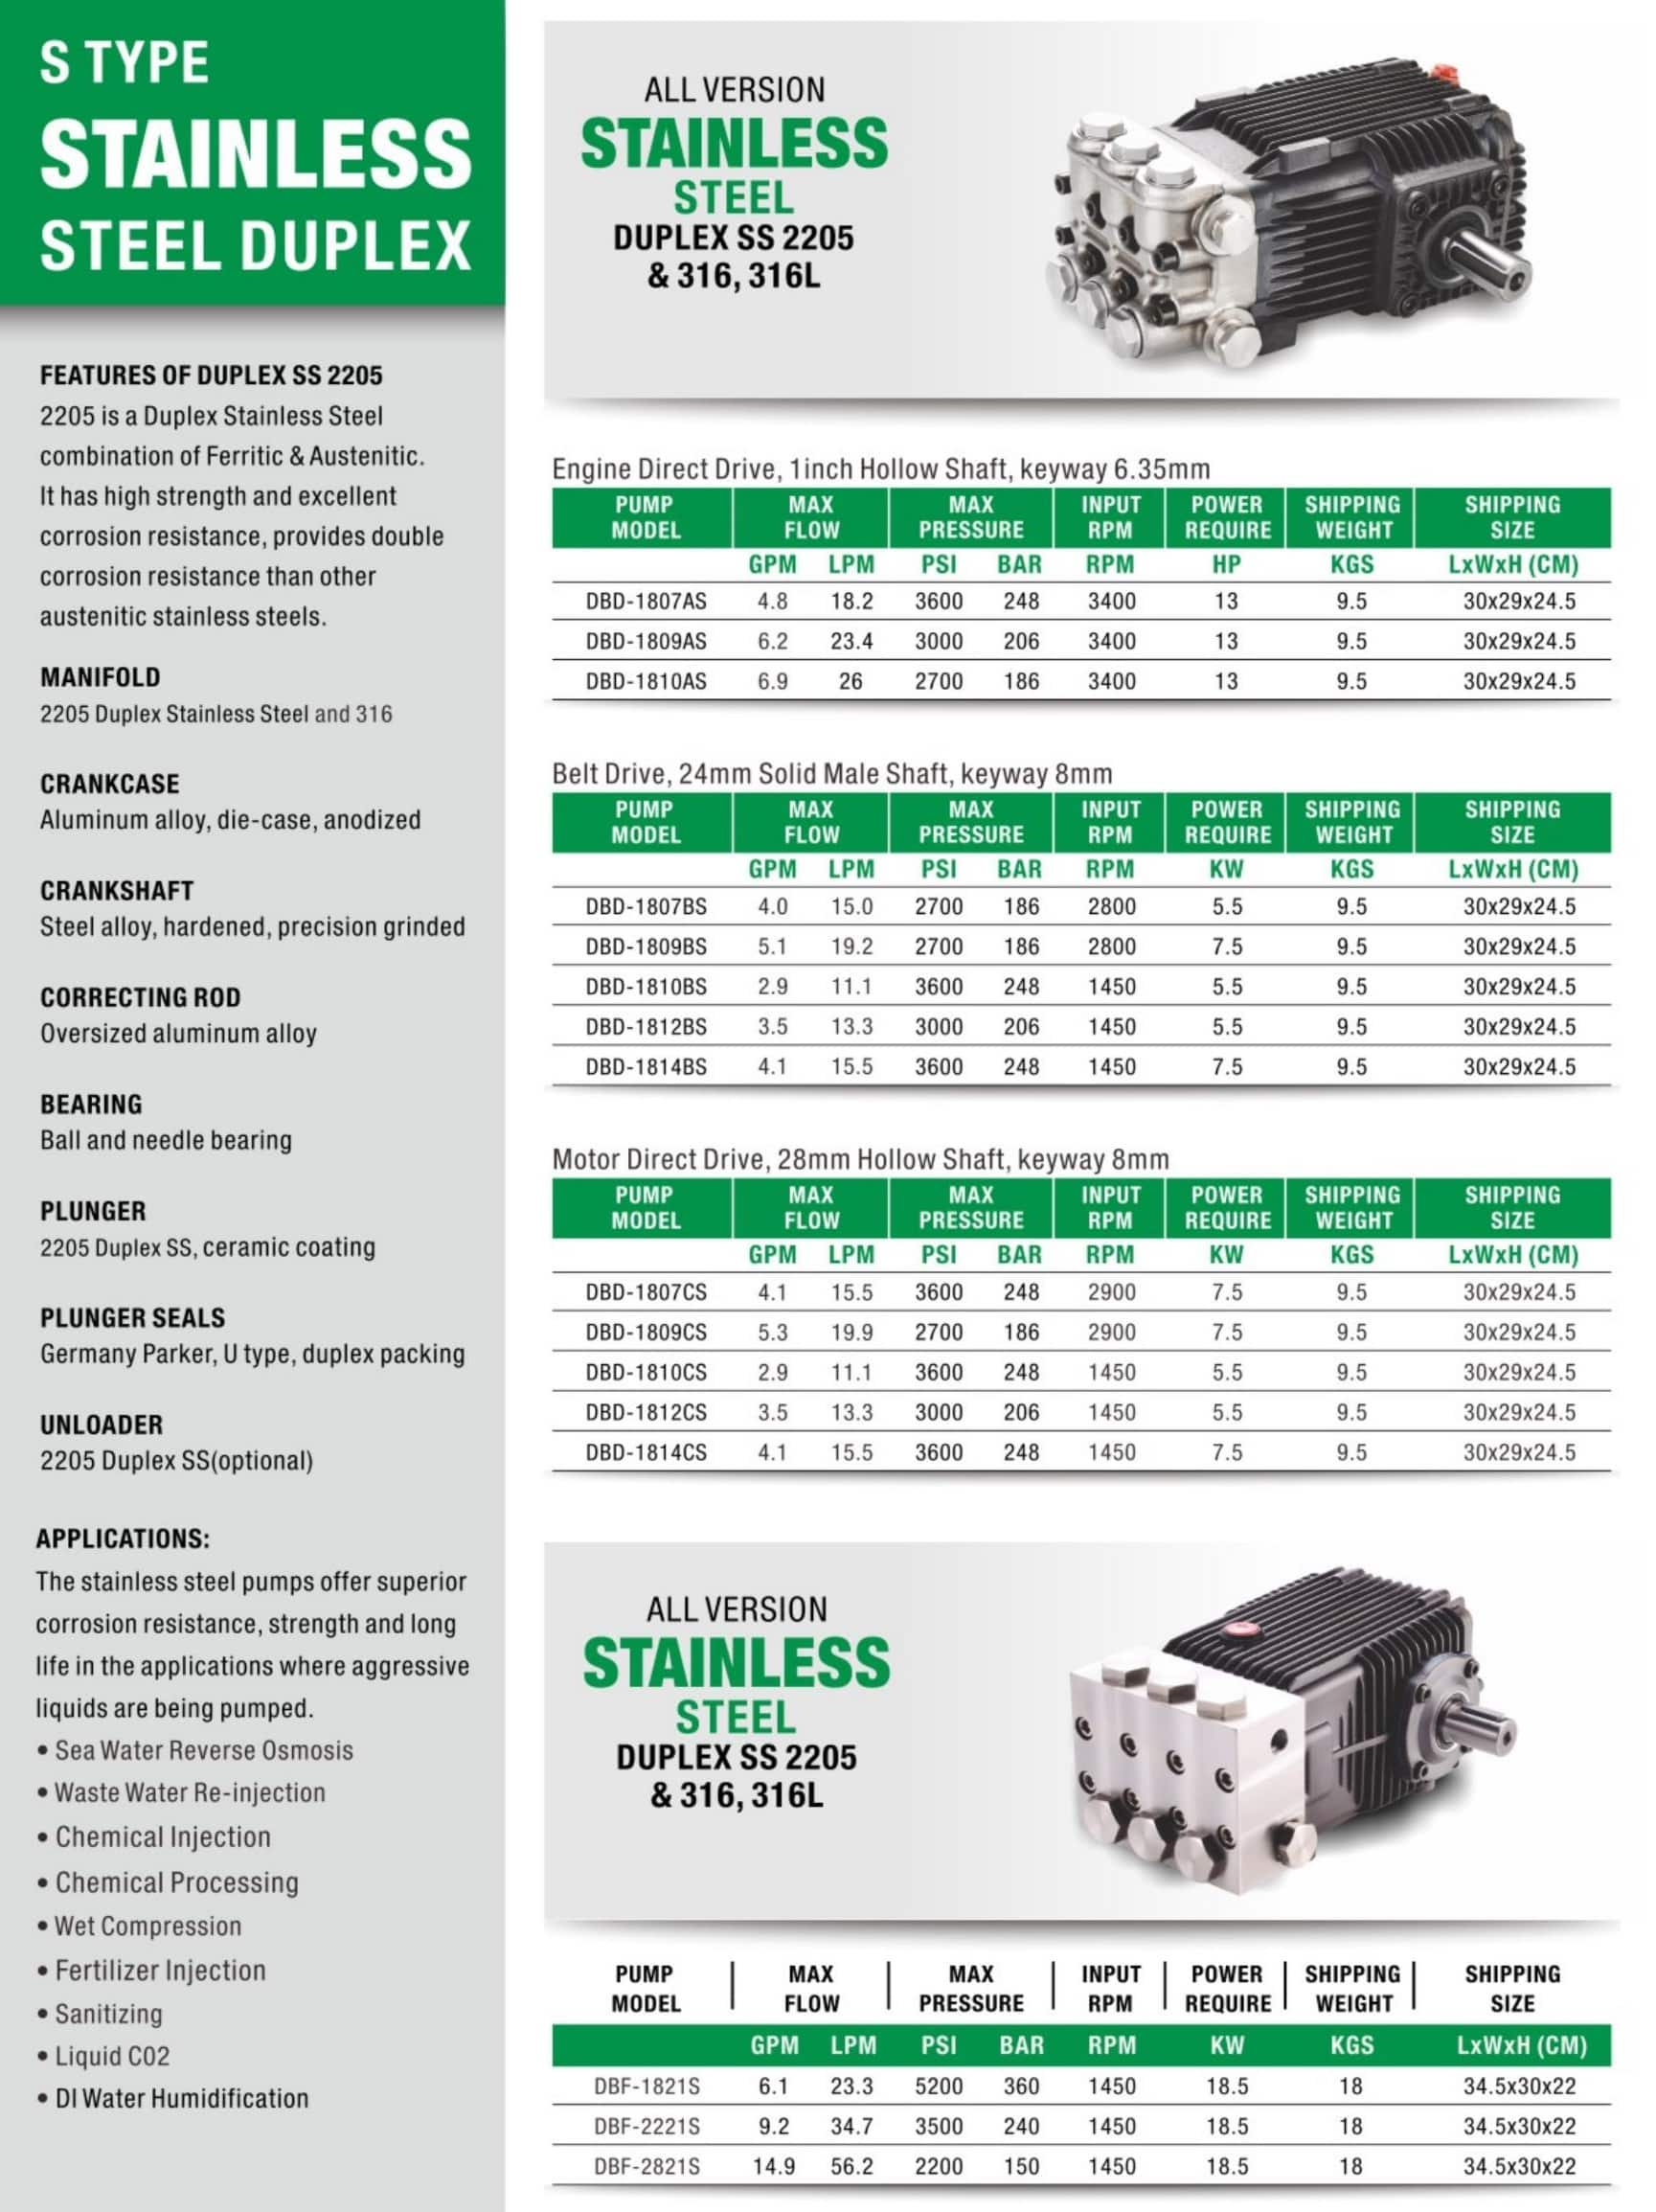 Commercial High Pressure Pump S Type Stainless Steel Duplex